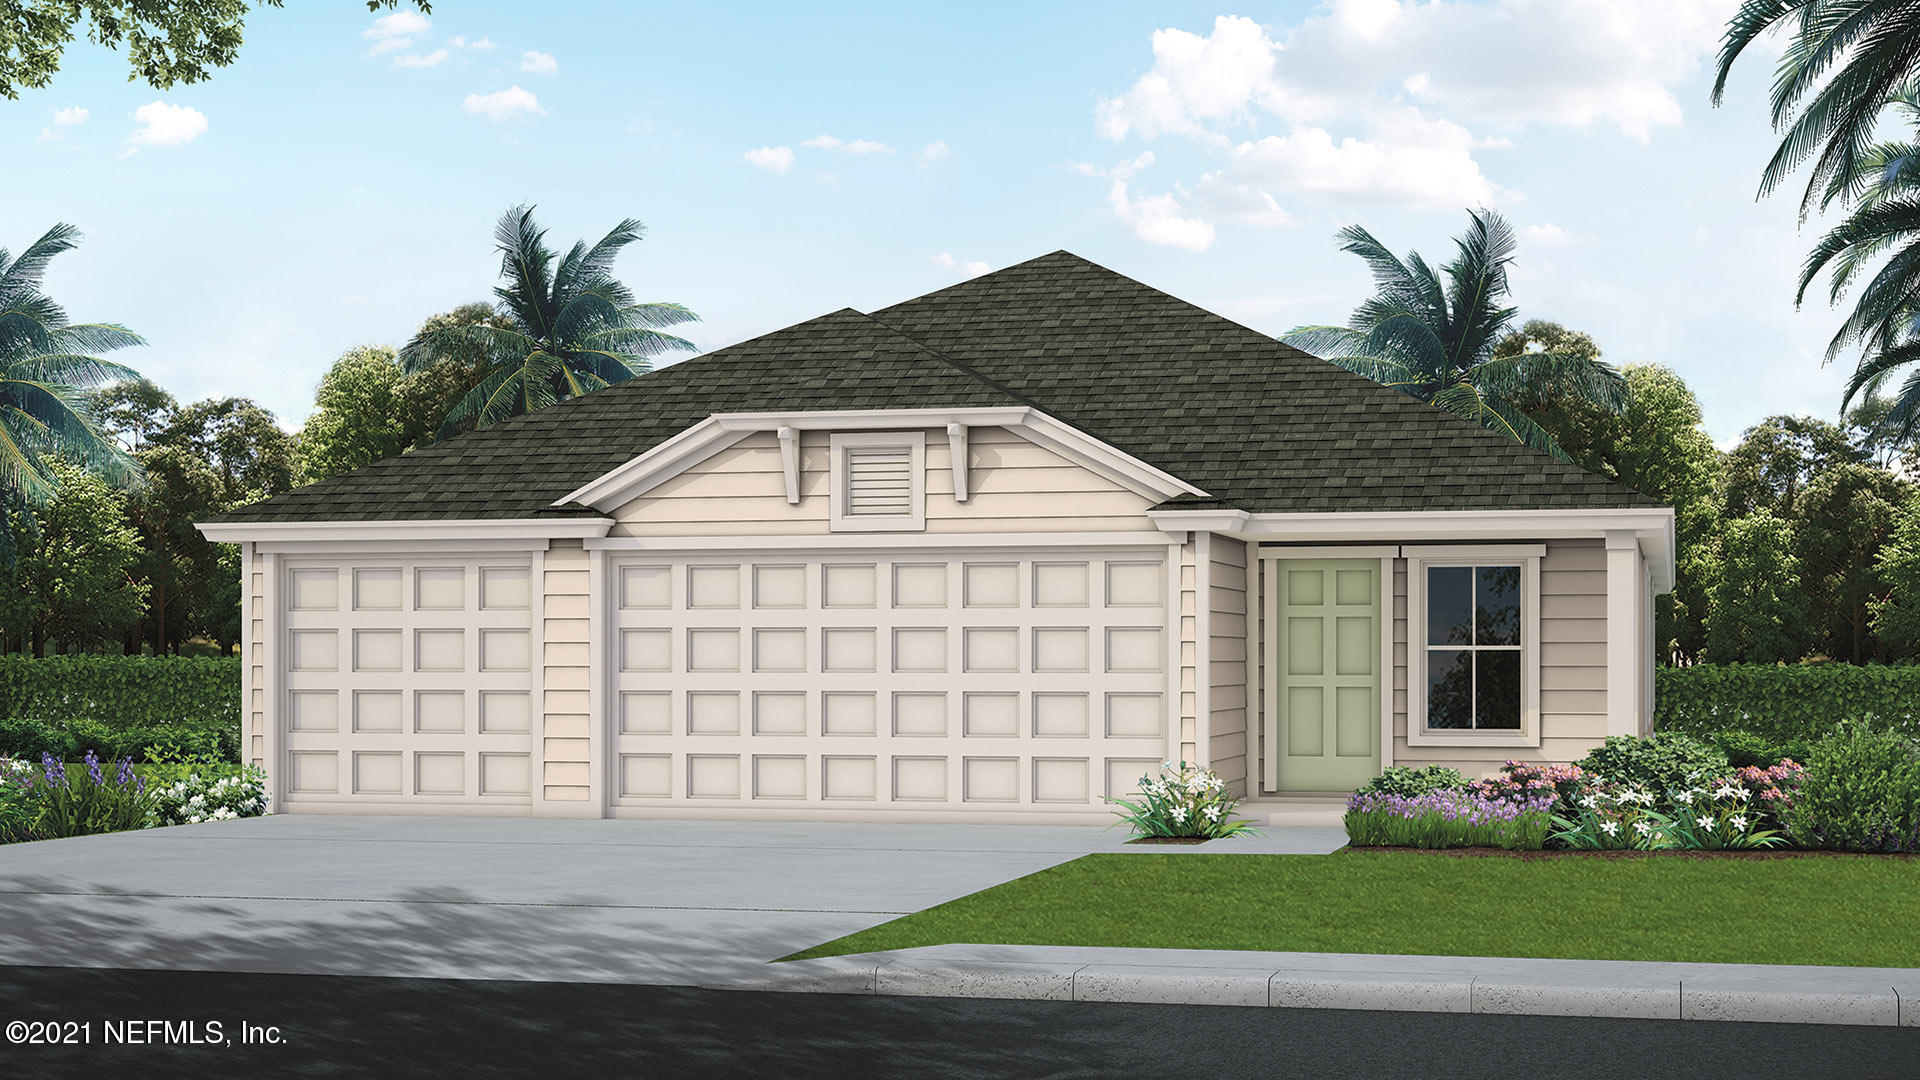 2665 COLD STREAM, GREEN COVE SPRINGS, FLORIDA 32043, 3 Bedrooms Bedrooms, ,2 BathroomsBathrooms,Residential,For sale,COLD STREAM,1089310